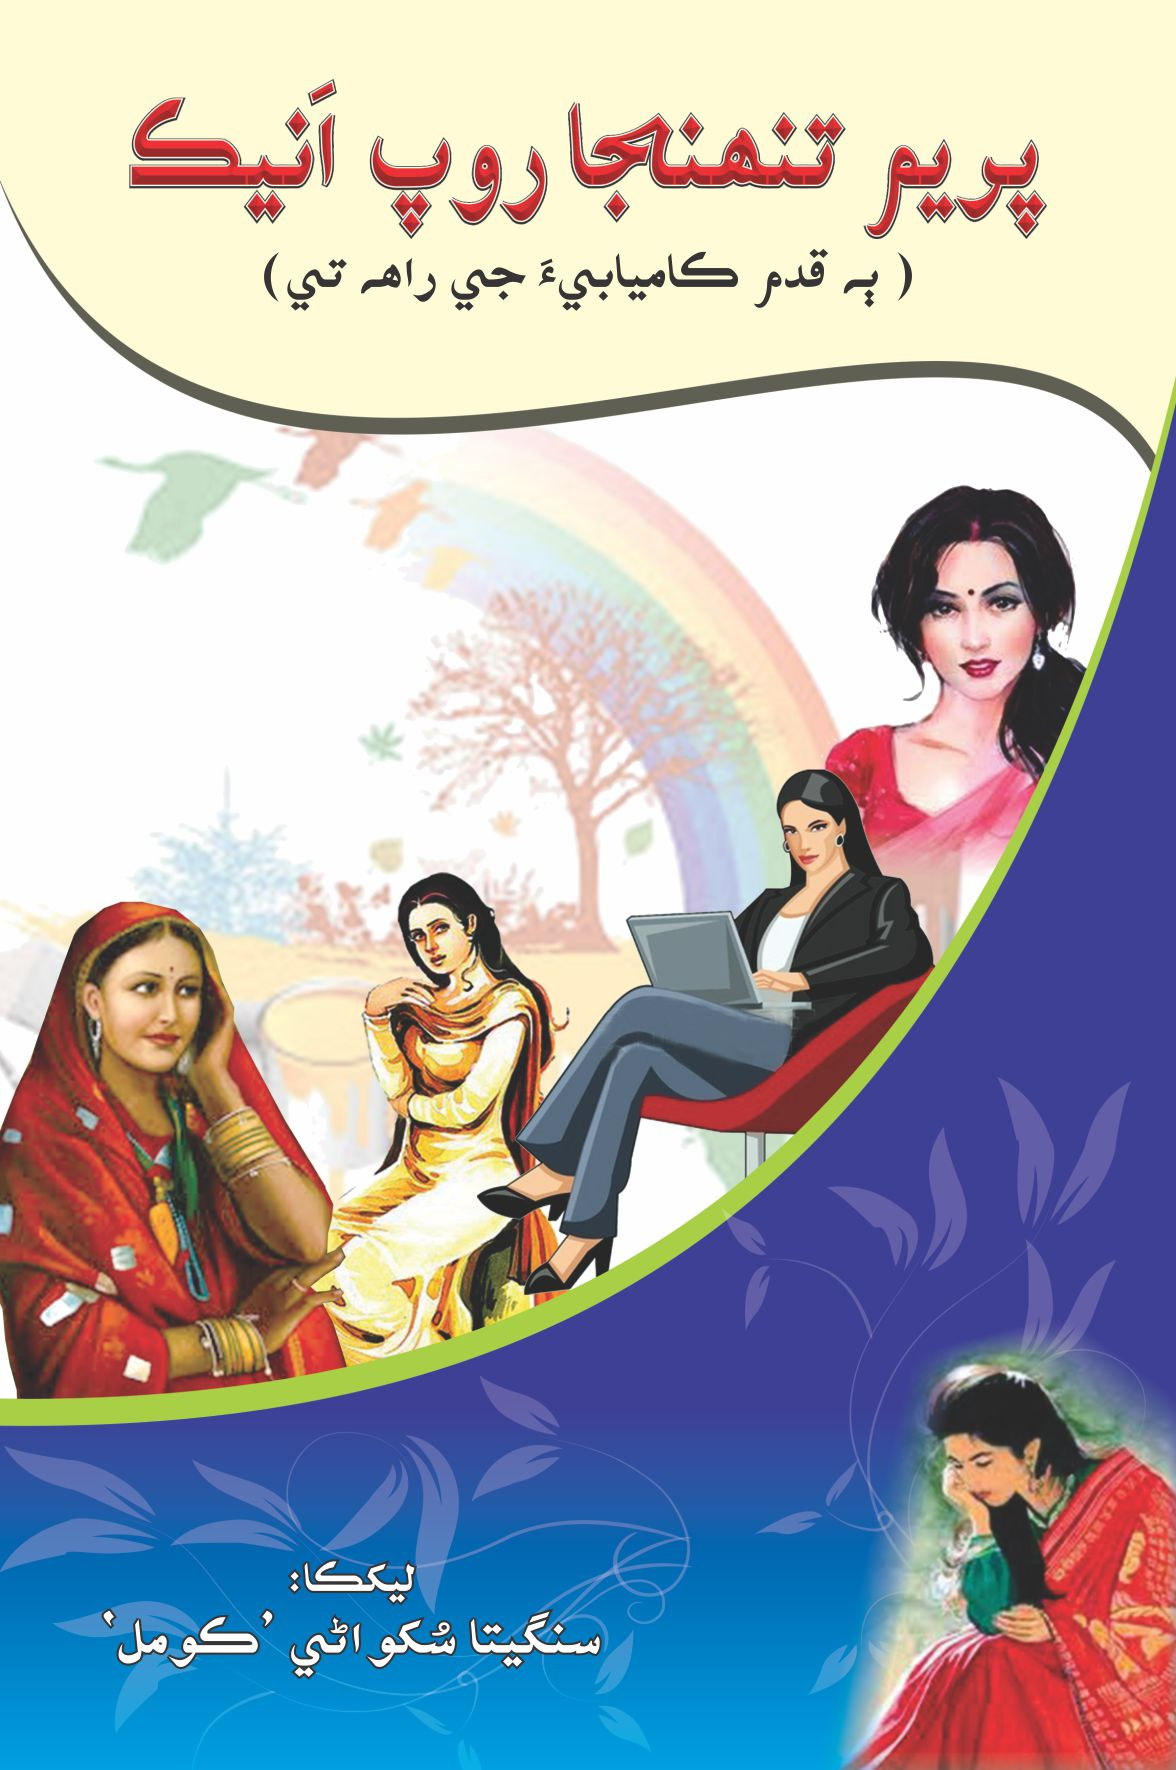 New Sindhi Book Released on Internet Click to watch online